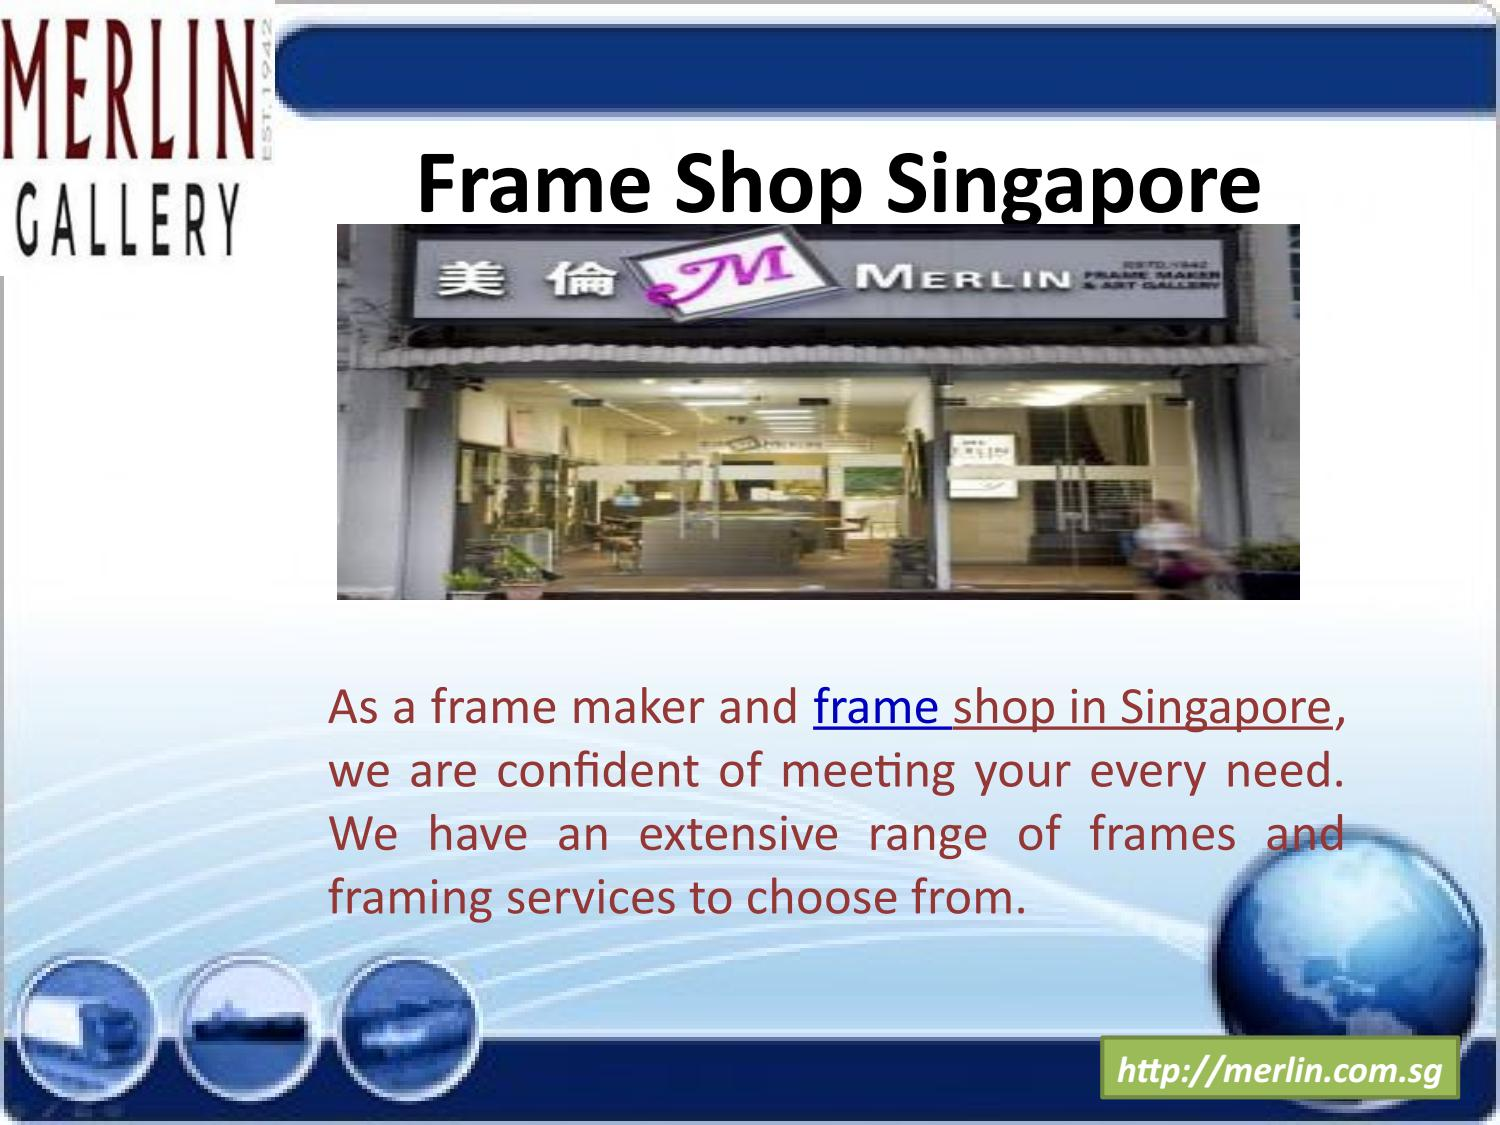 Frame shop singapore by Merlin Frame Maker & Art Gallery - issuu